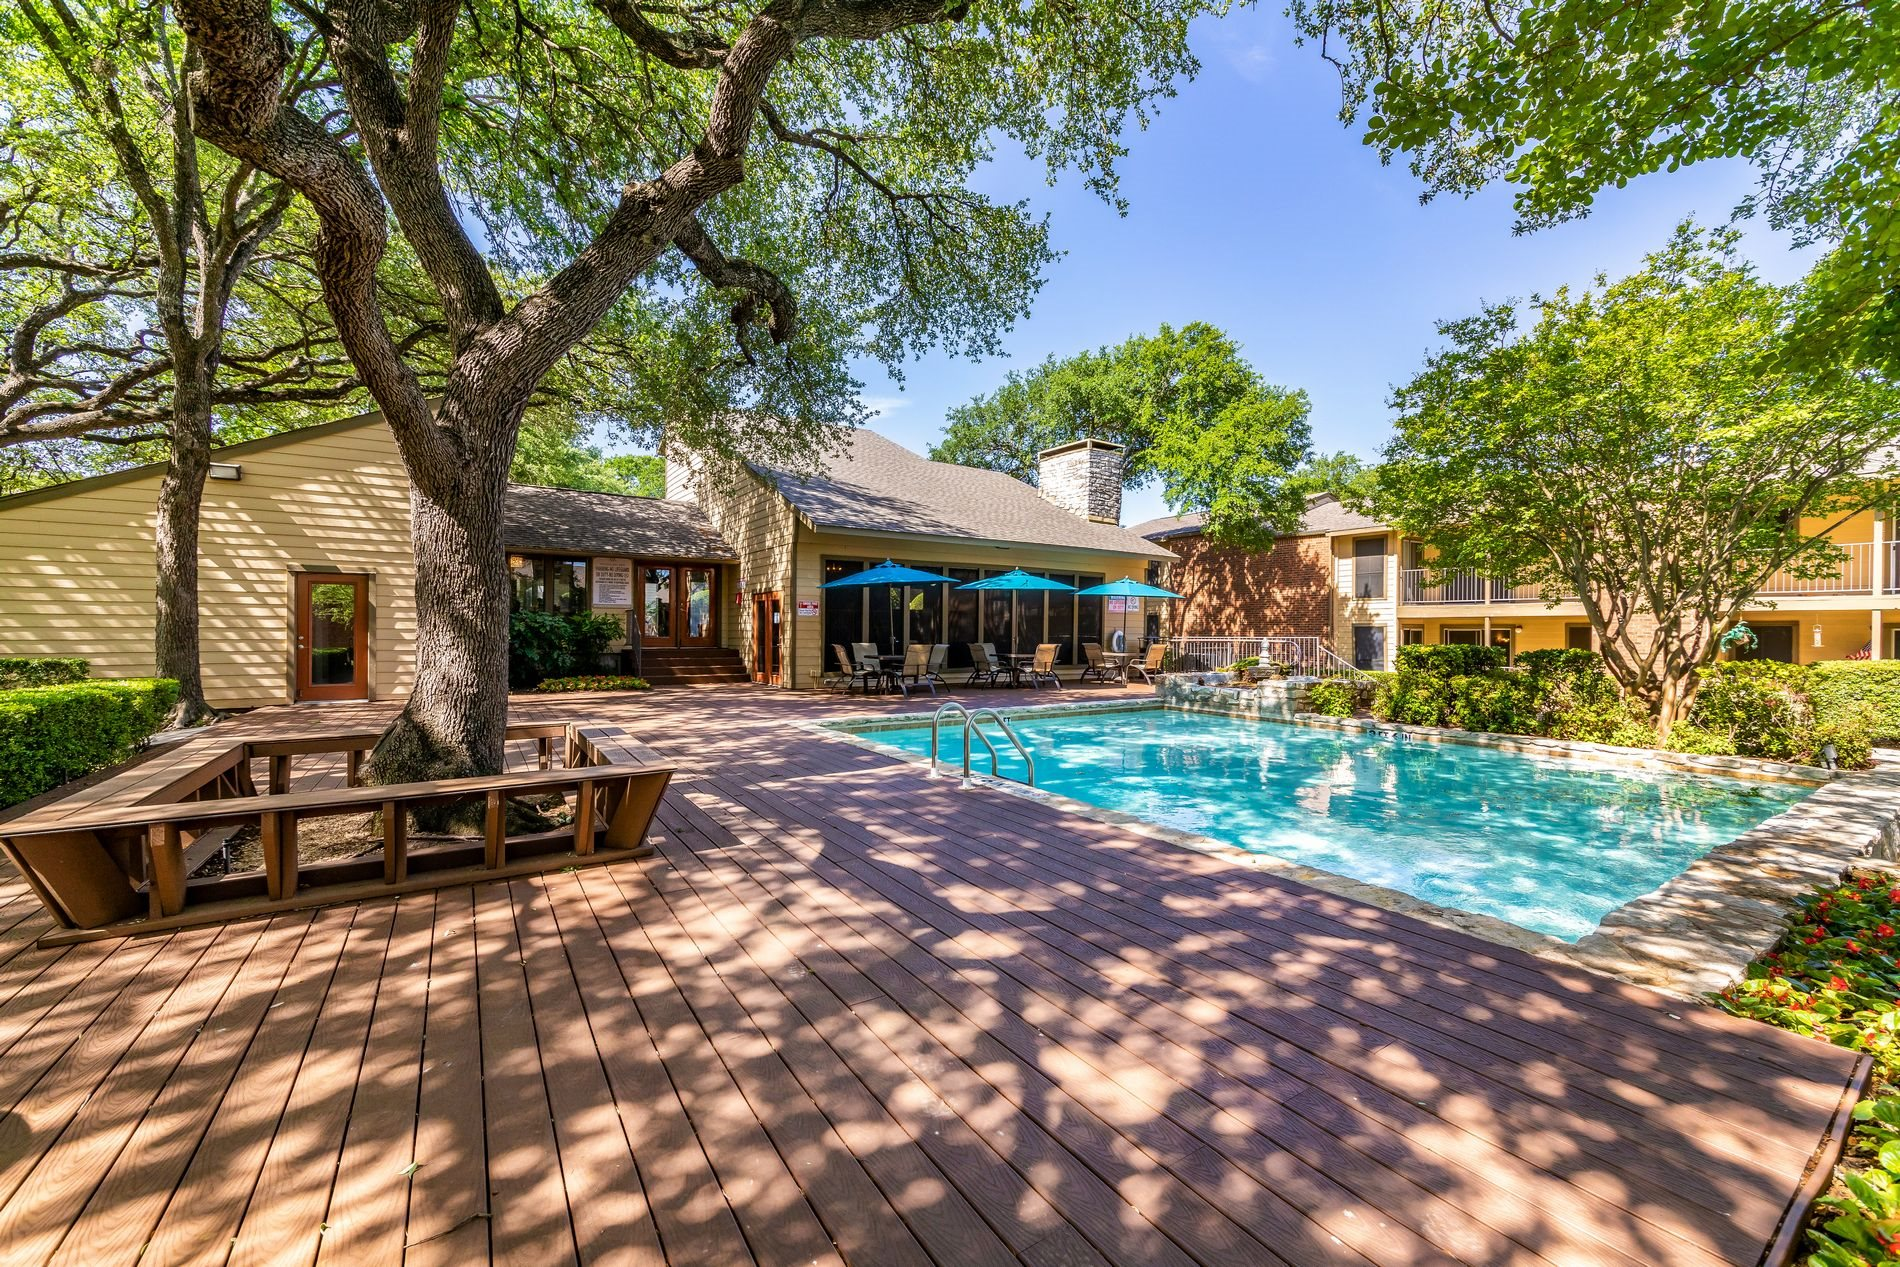 Pool Deck at Westdale Pointe Apartment Homes in Austin, Texas, TX